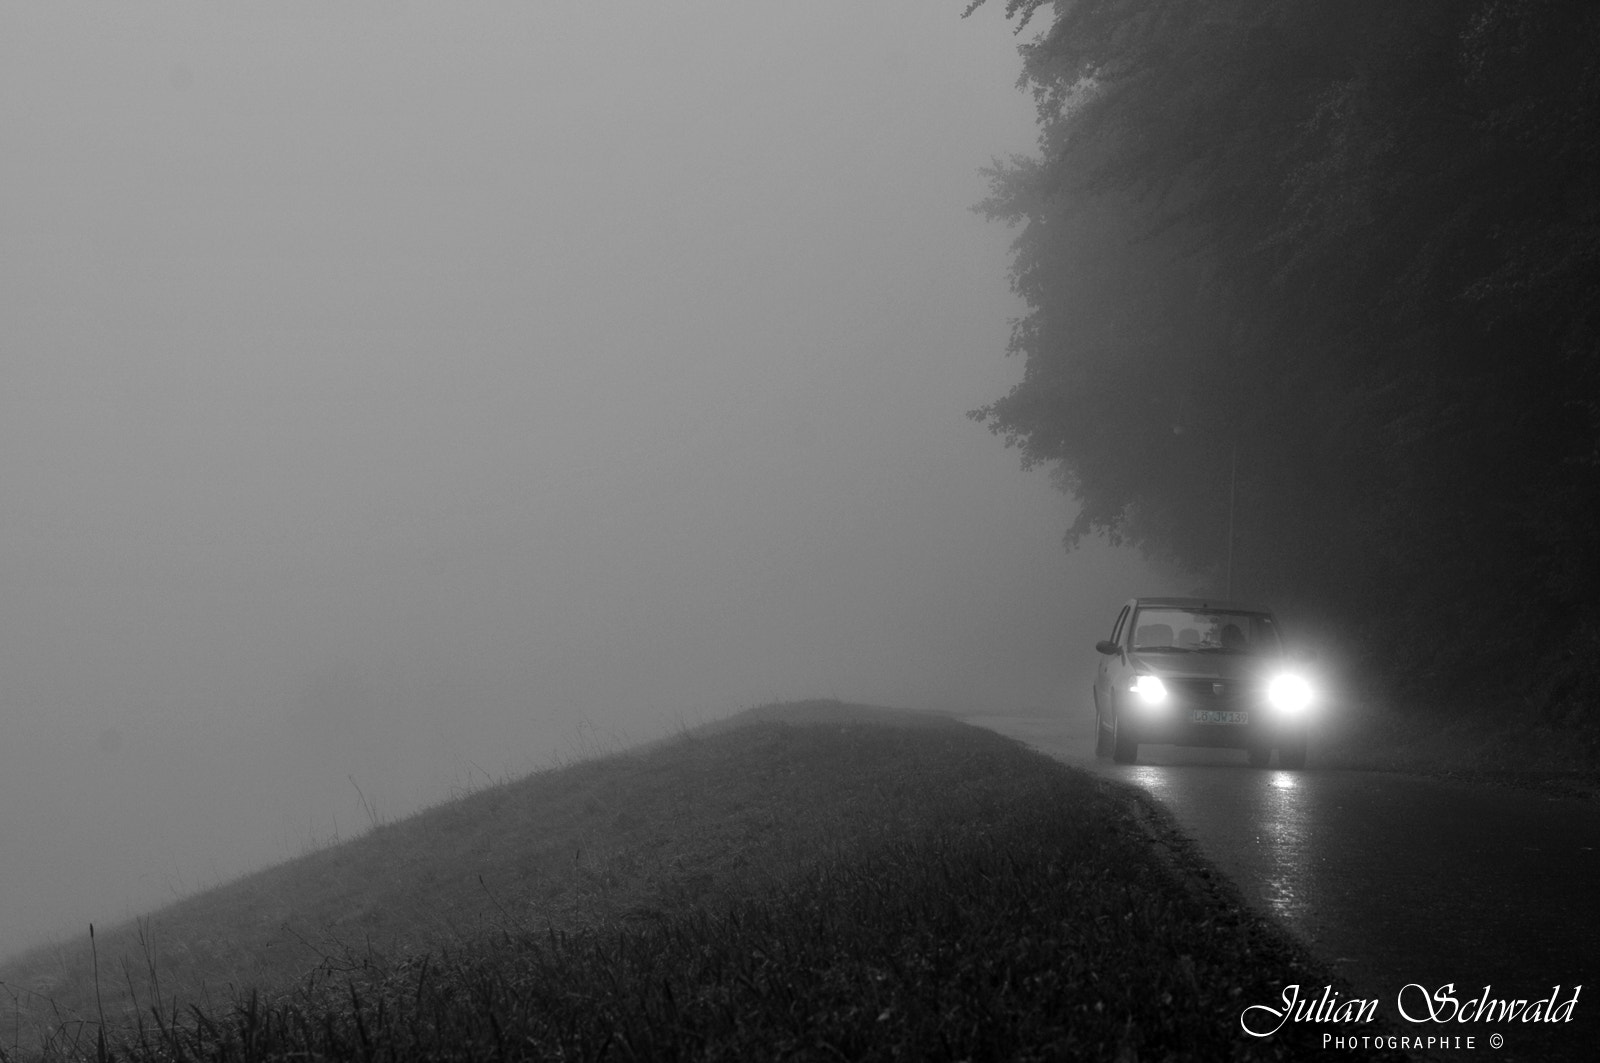 Photograph Car in the Fog by Julian Schwald on 500px